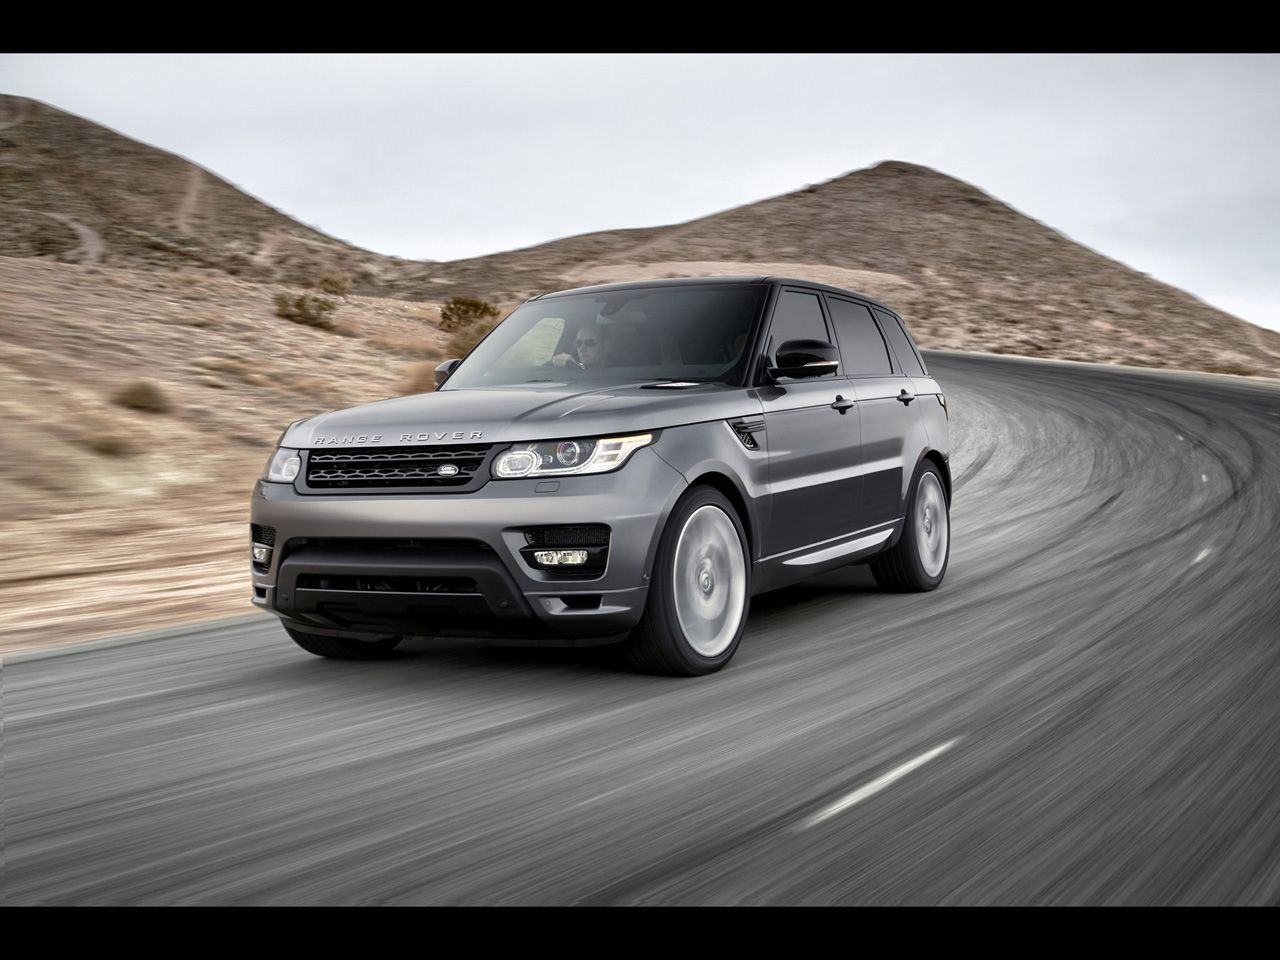 2014 land rover range rover sport motion grey 11 1280x960 wallpaper